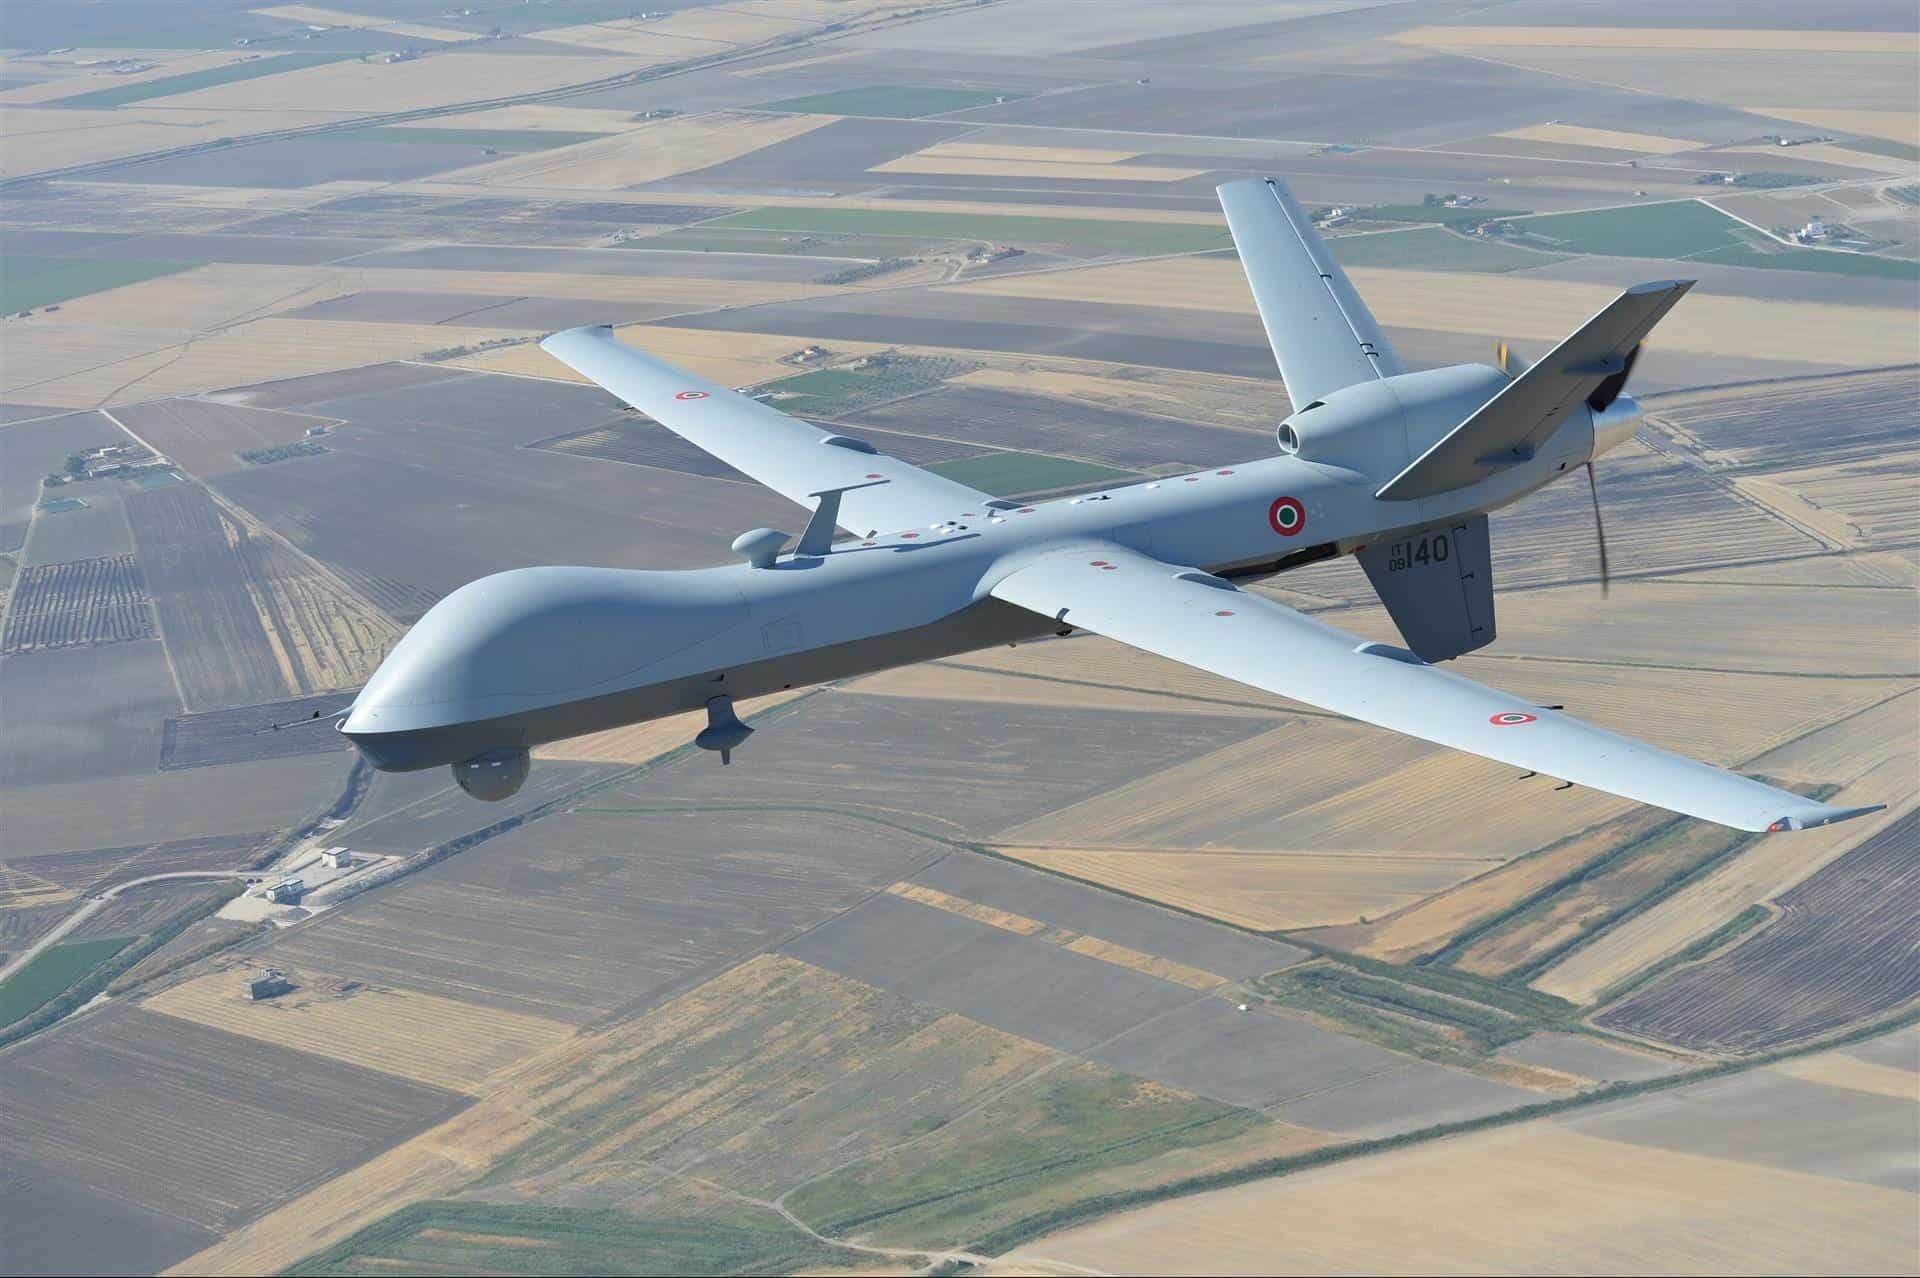 Predator B UAS Equipped With Automatic Takeoff and Landing